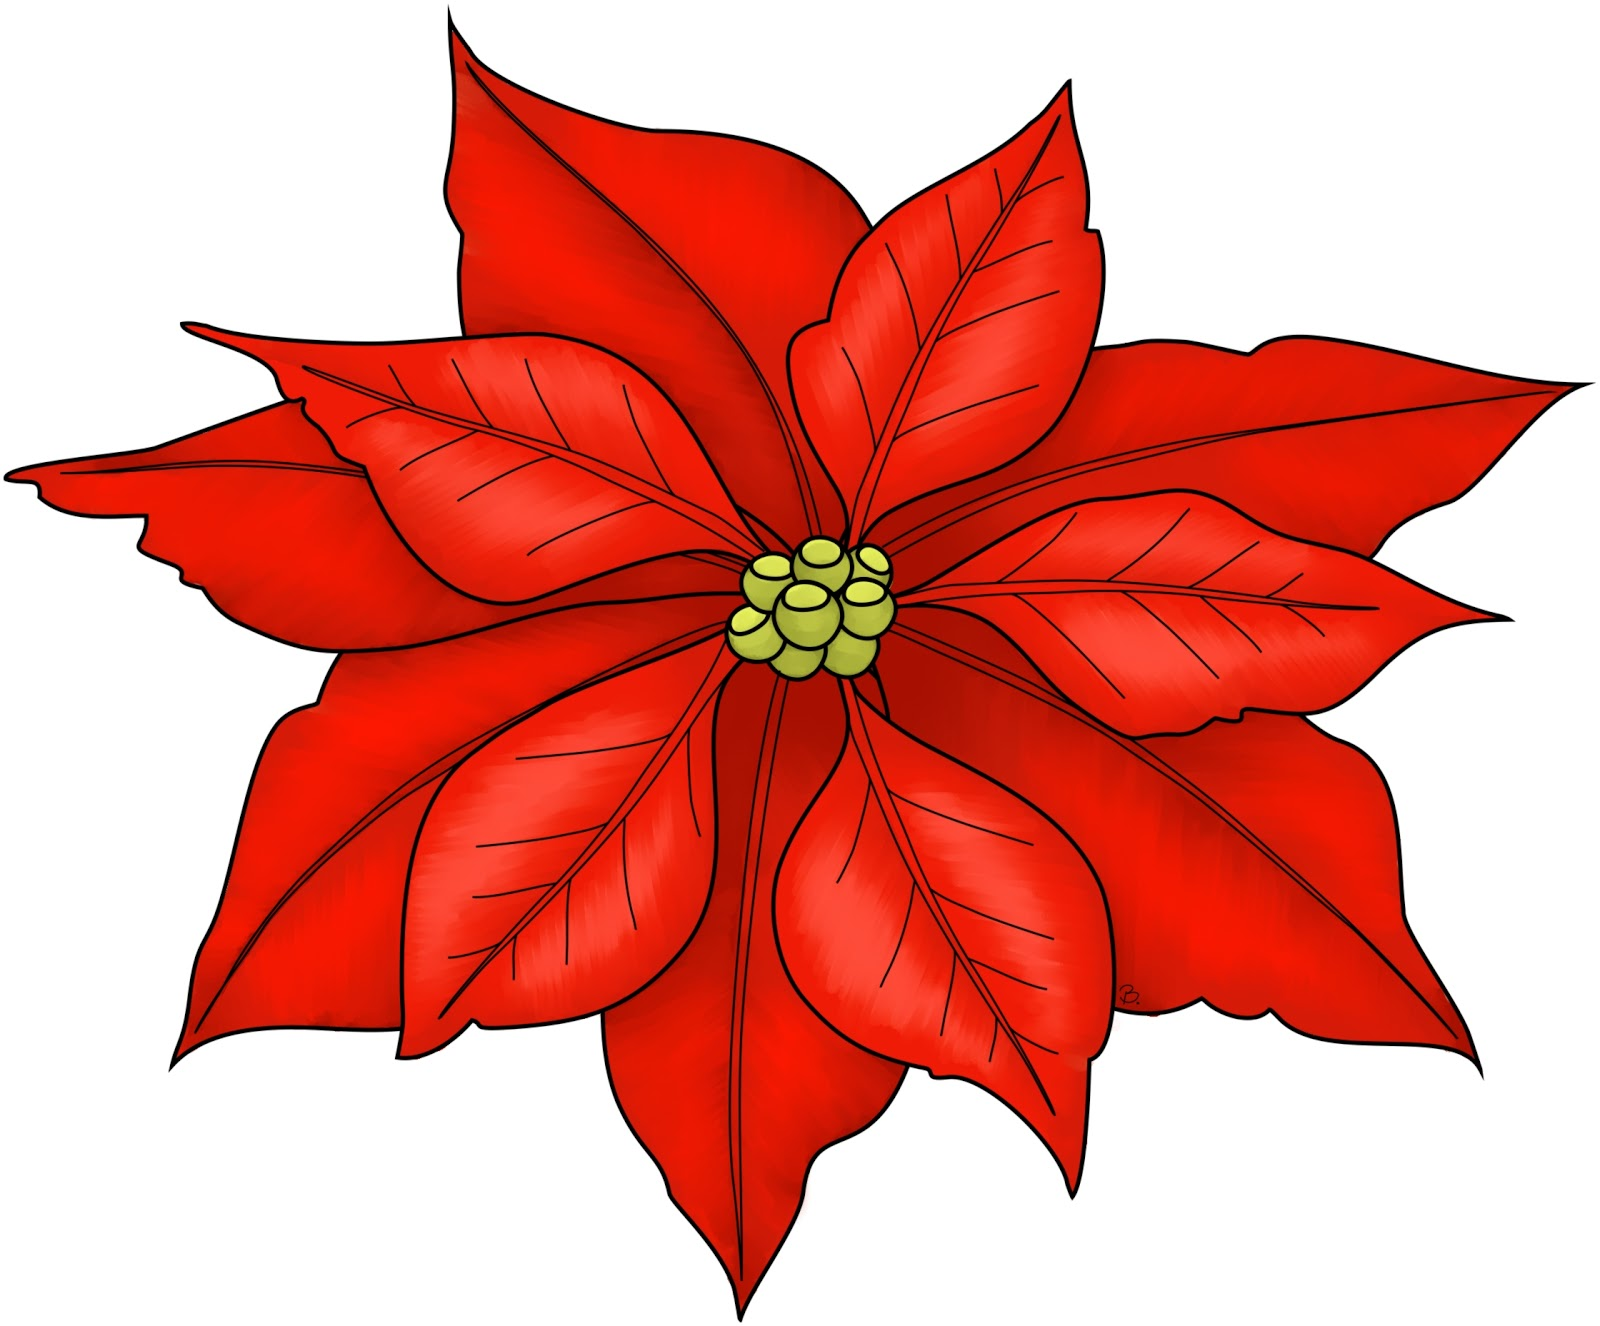 Poinsettia clipart cute Make cute Printable cards Christmas